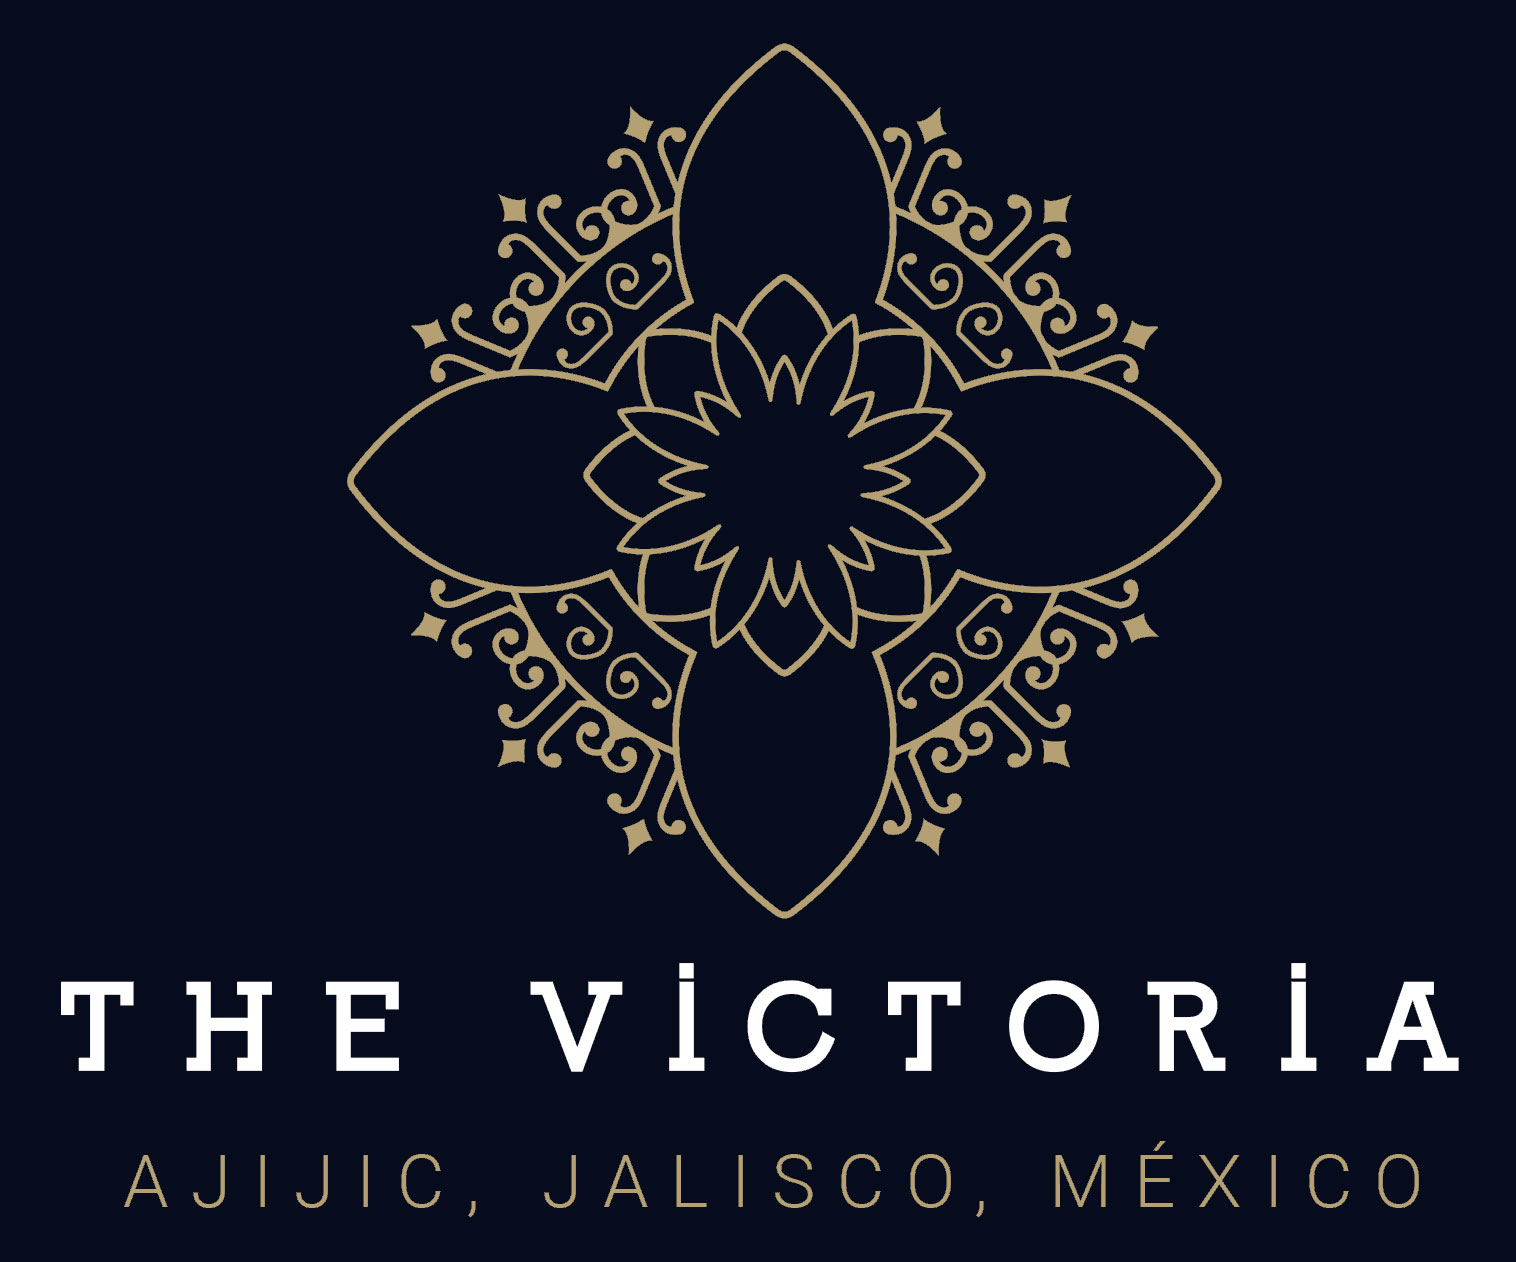 The Victoria Ajijic